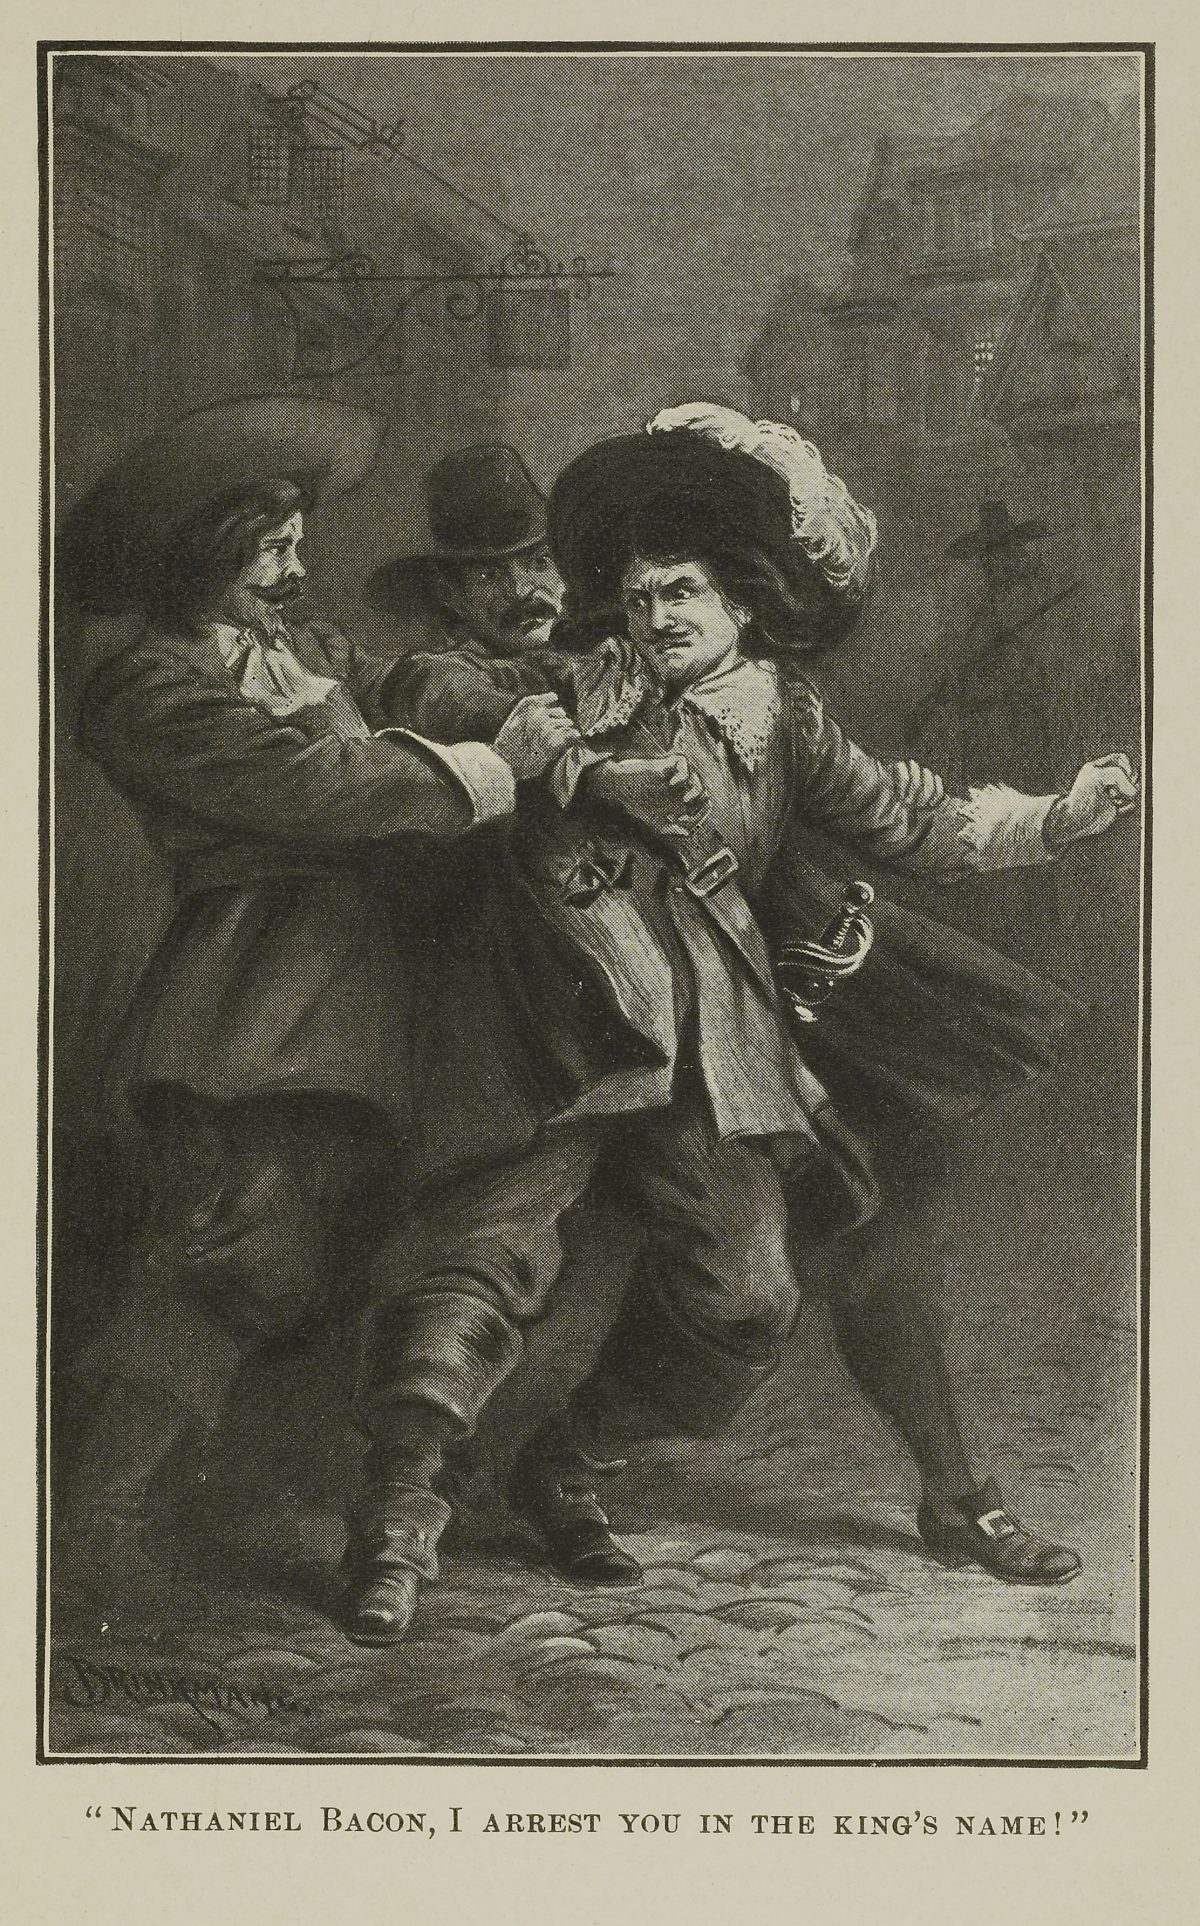 Arrest of Nathaniel Bacon